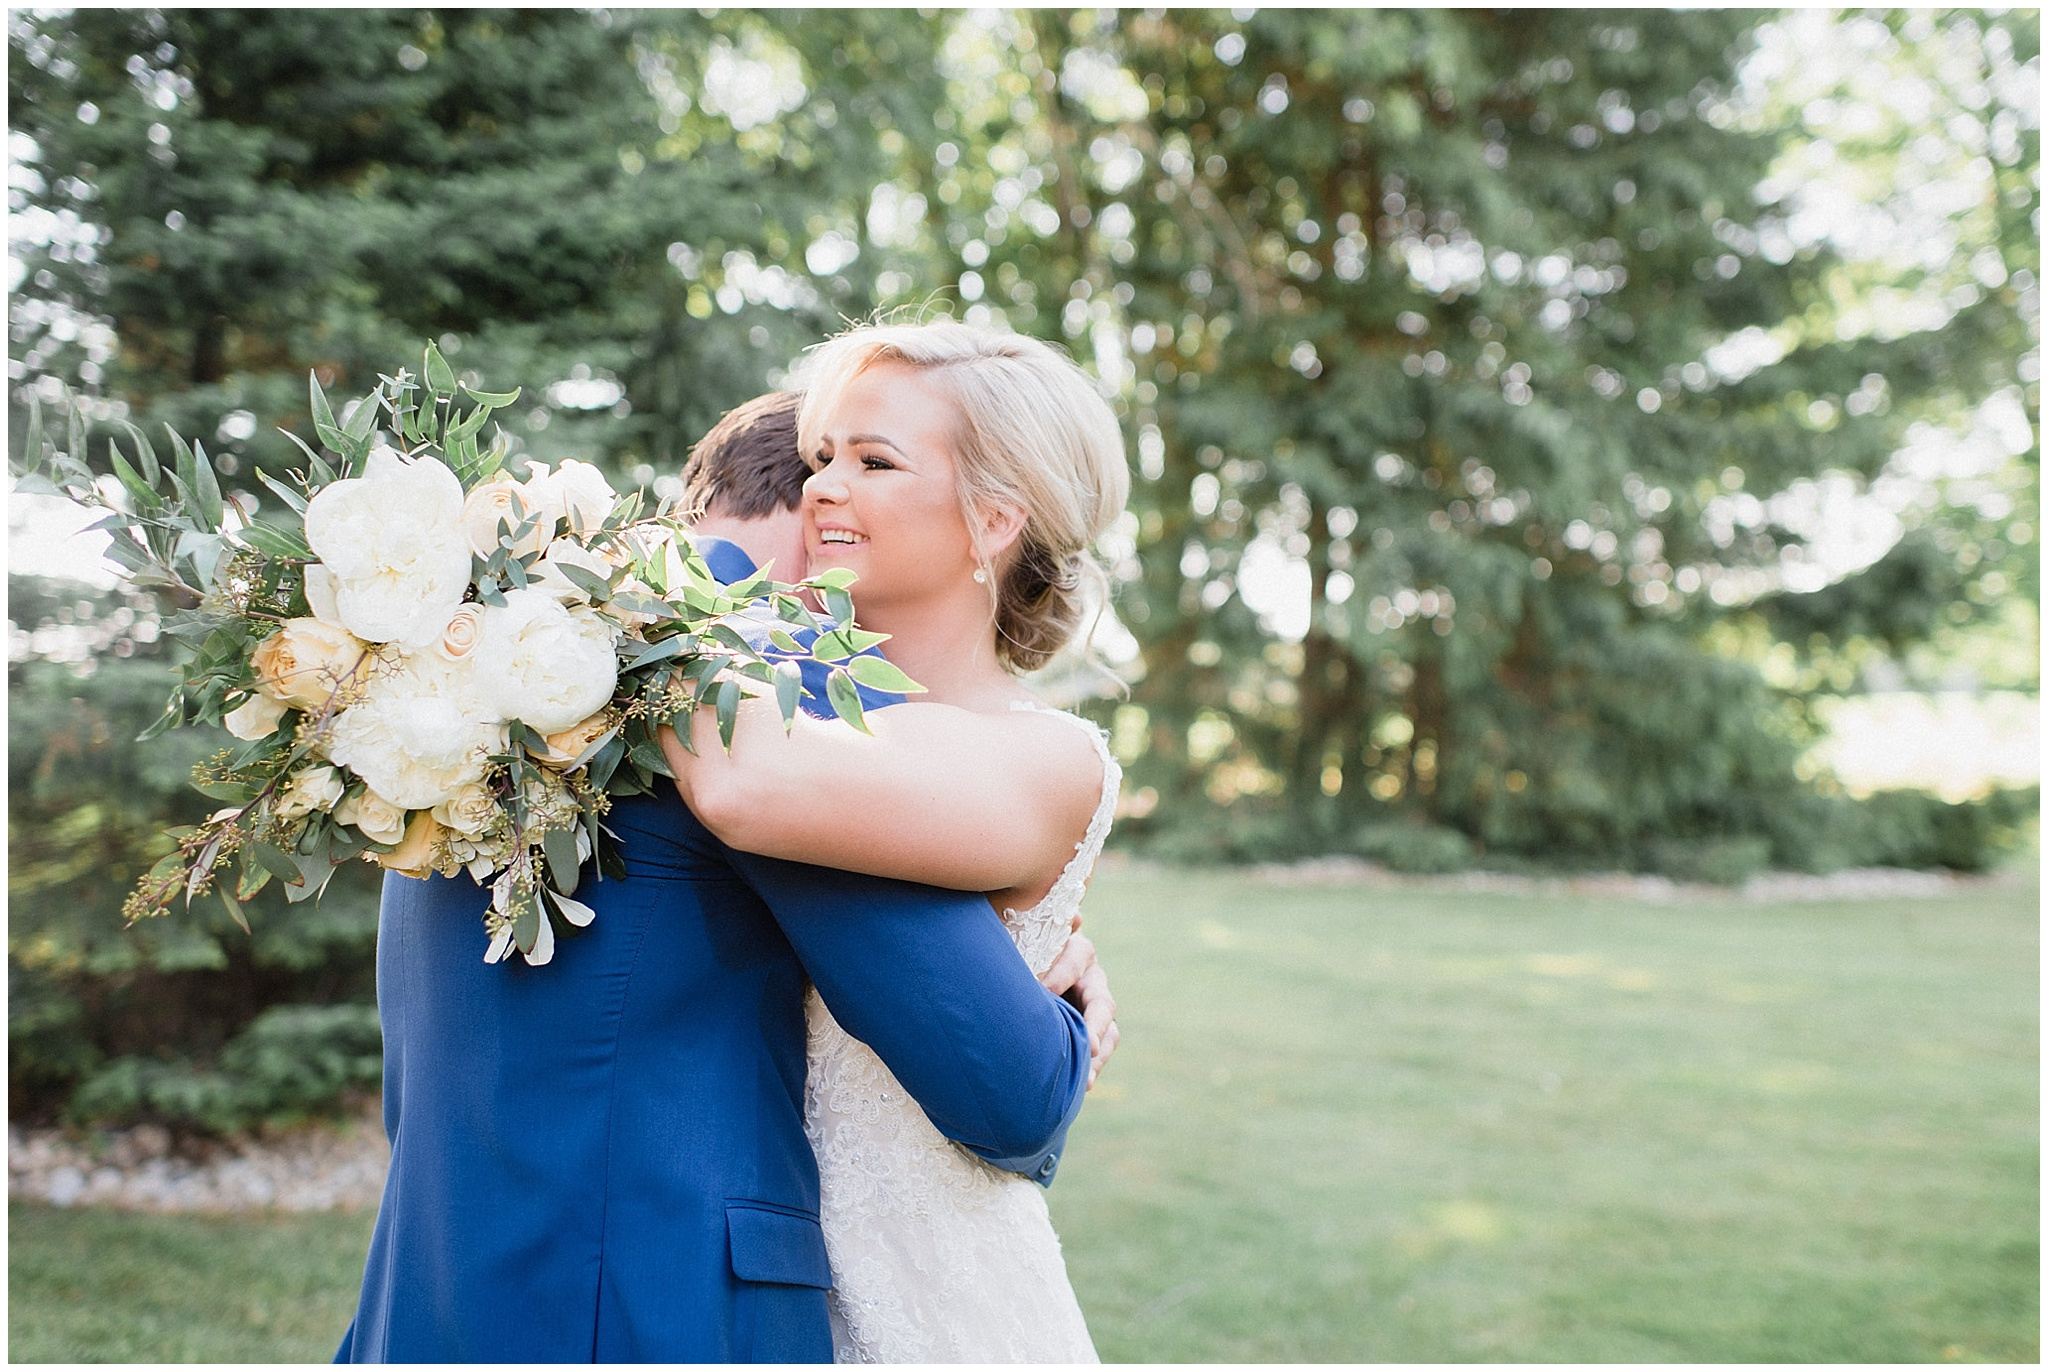 Tent wedding on family farm in Guelph, Ontario by Jenn Kavanagh Photography